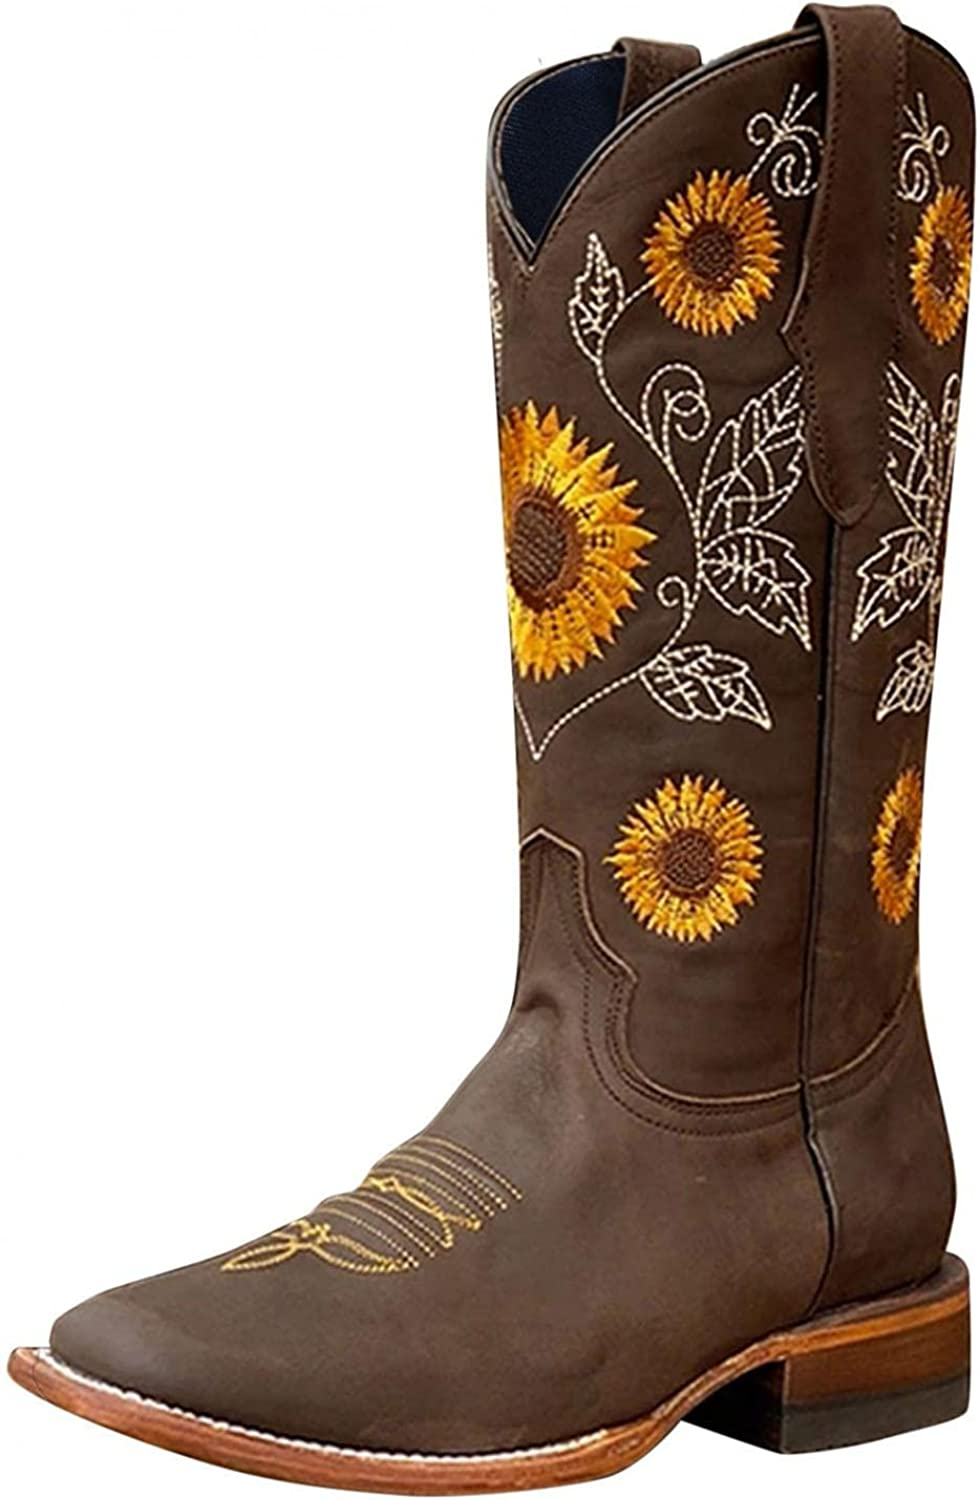 Cowboy Boots for Women Cowgirl Boots for Women Sunflowers Mid Ca